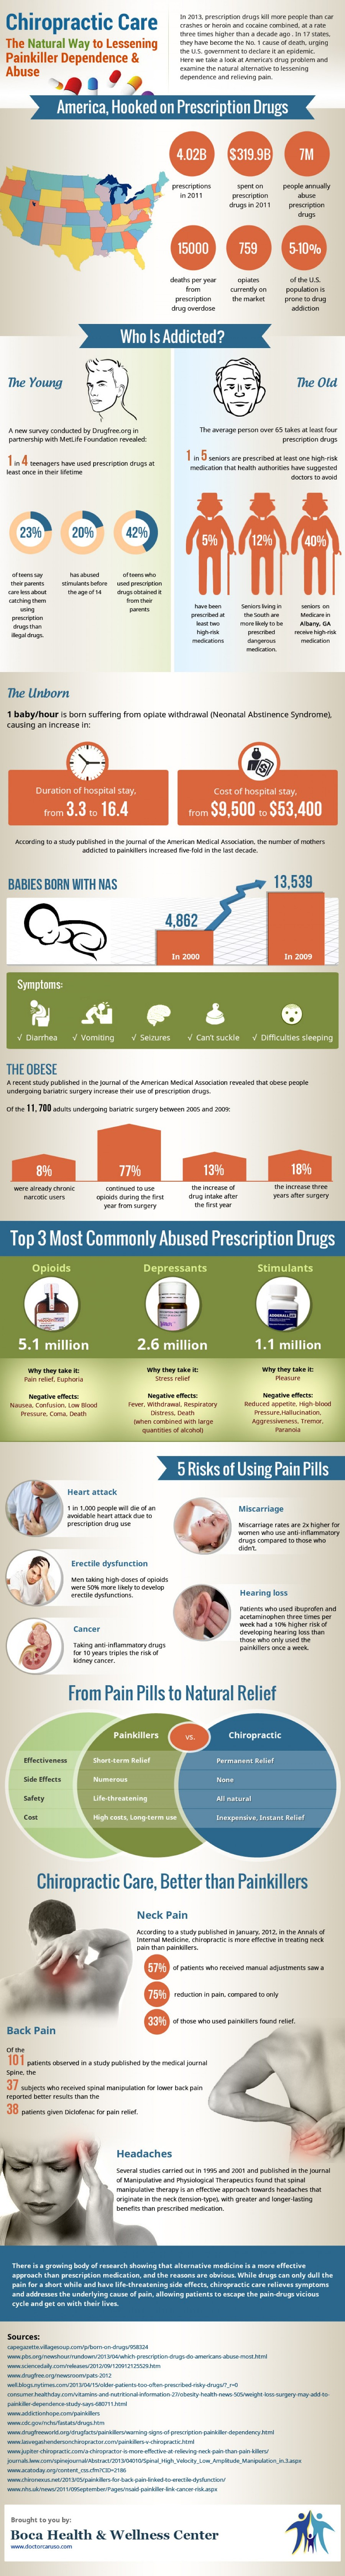 10. Teenagers are more addicted to Prescription Drugs